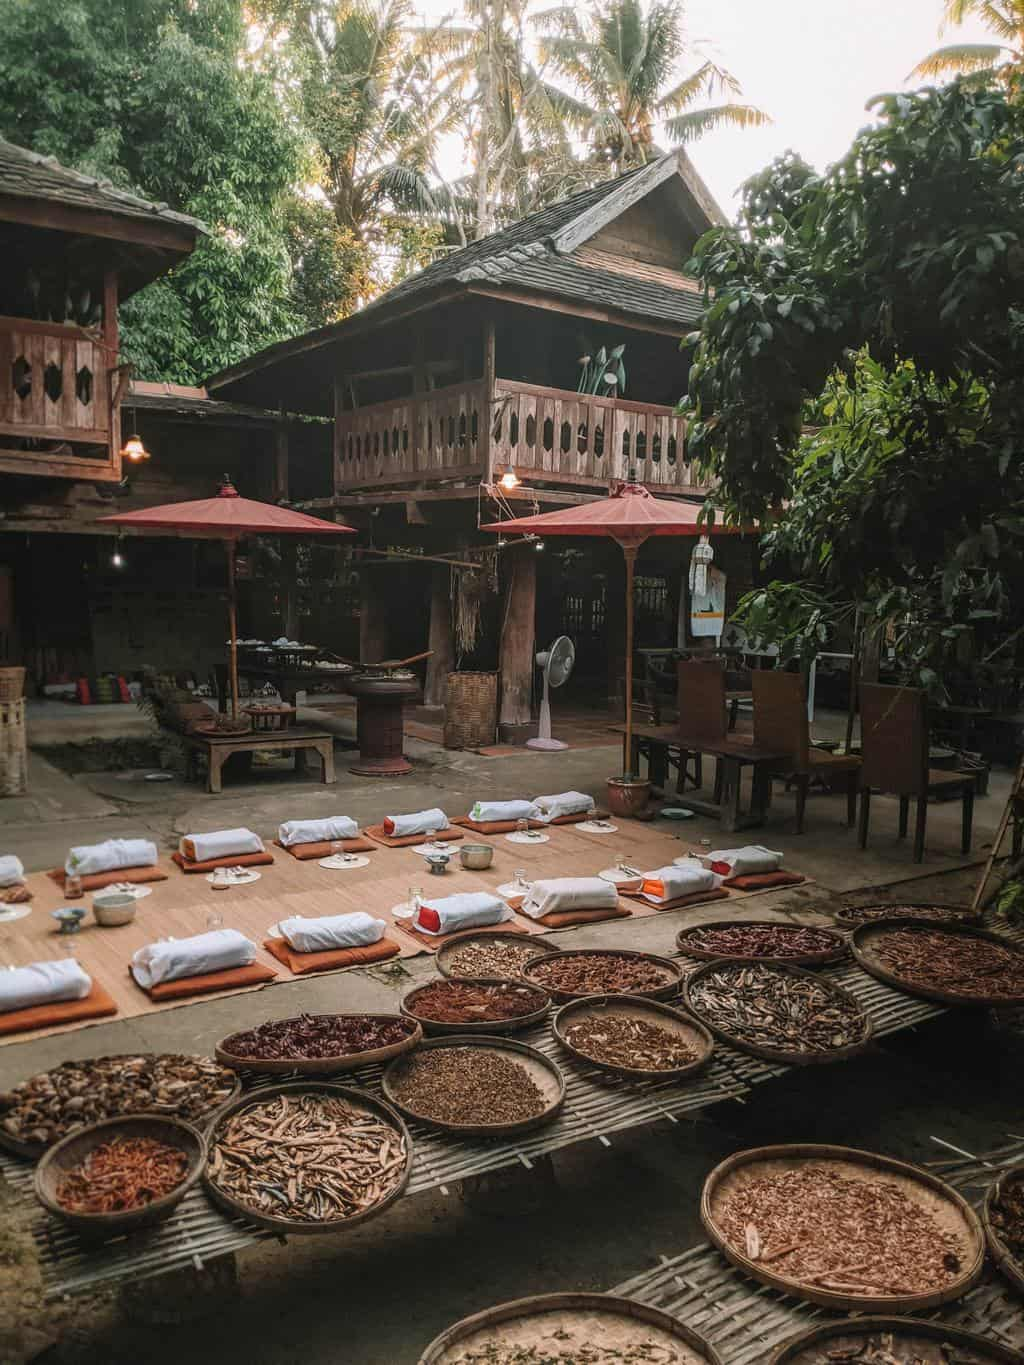 an outdoor dining area where guests sit on cushions on the floor, planning a trip to thailand